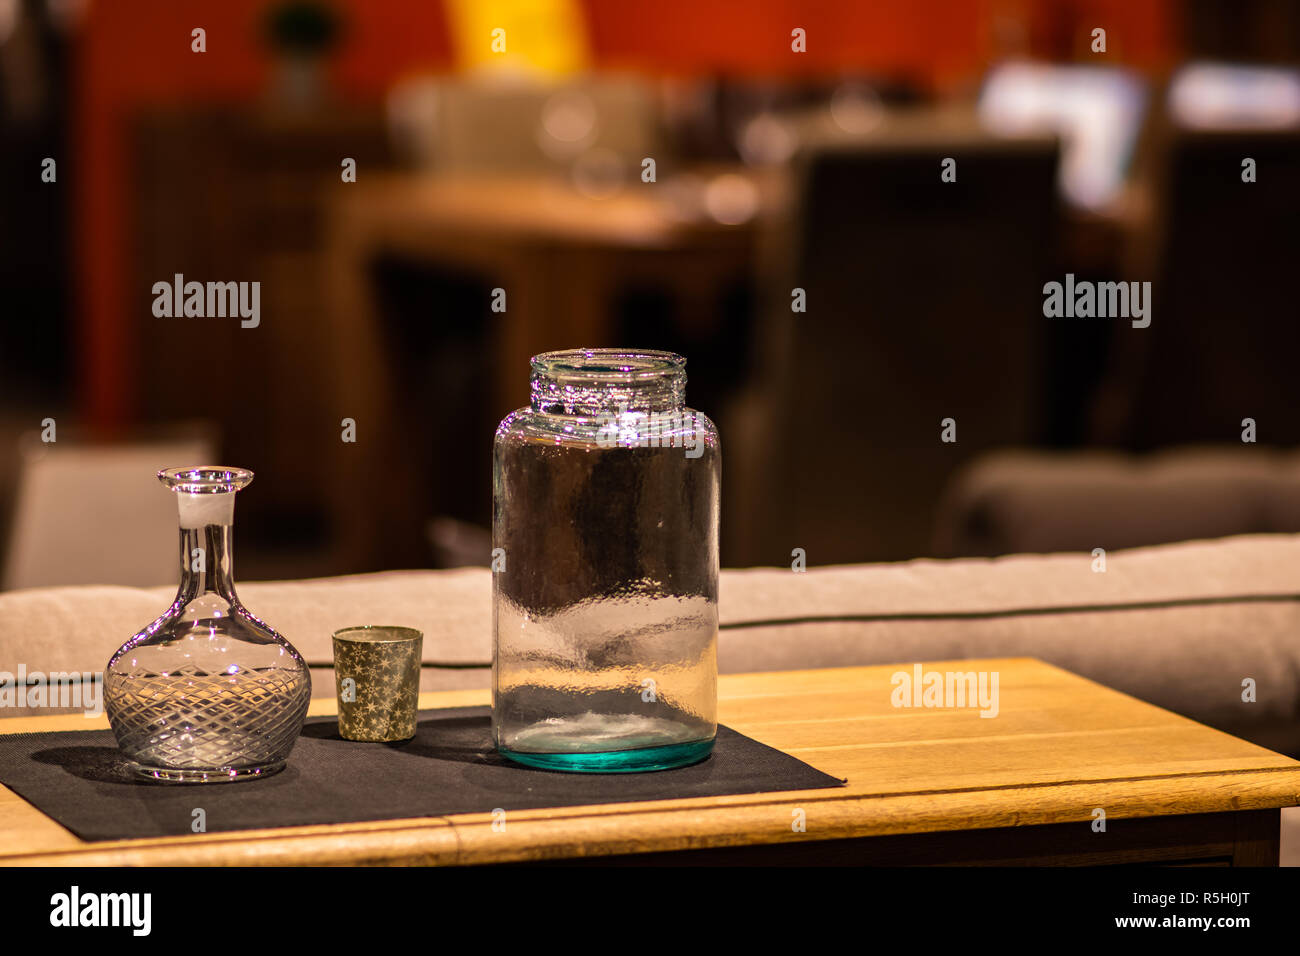 Diner Table Decoration Are Always Attractive For A Cozy Interior Stock Photo Alamy